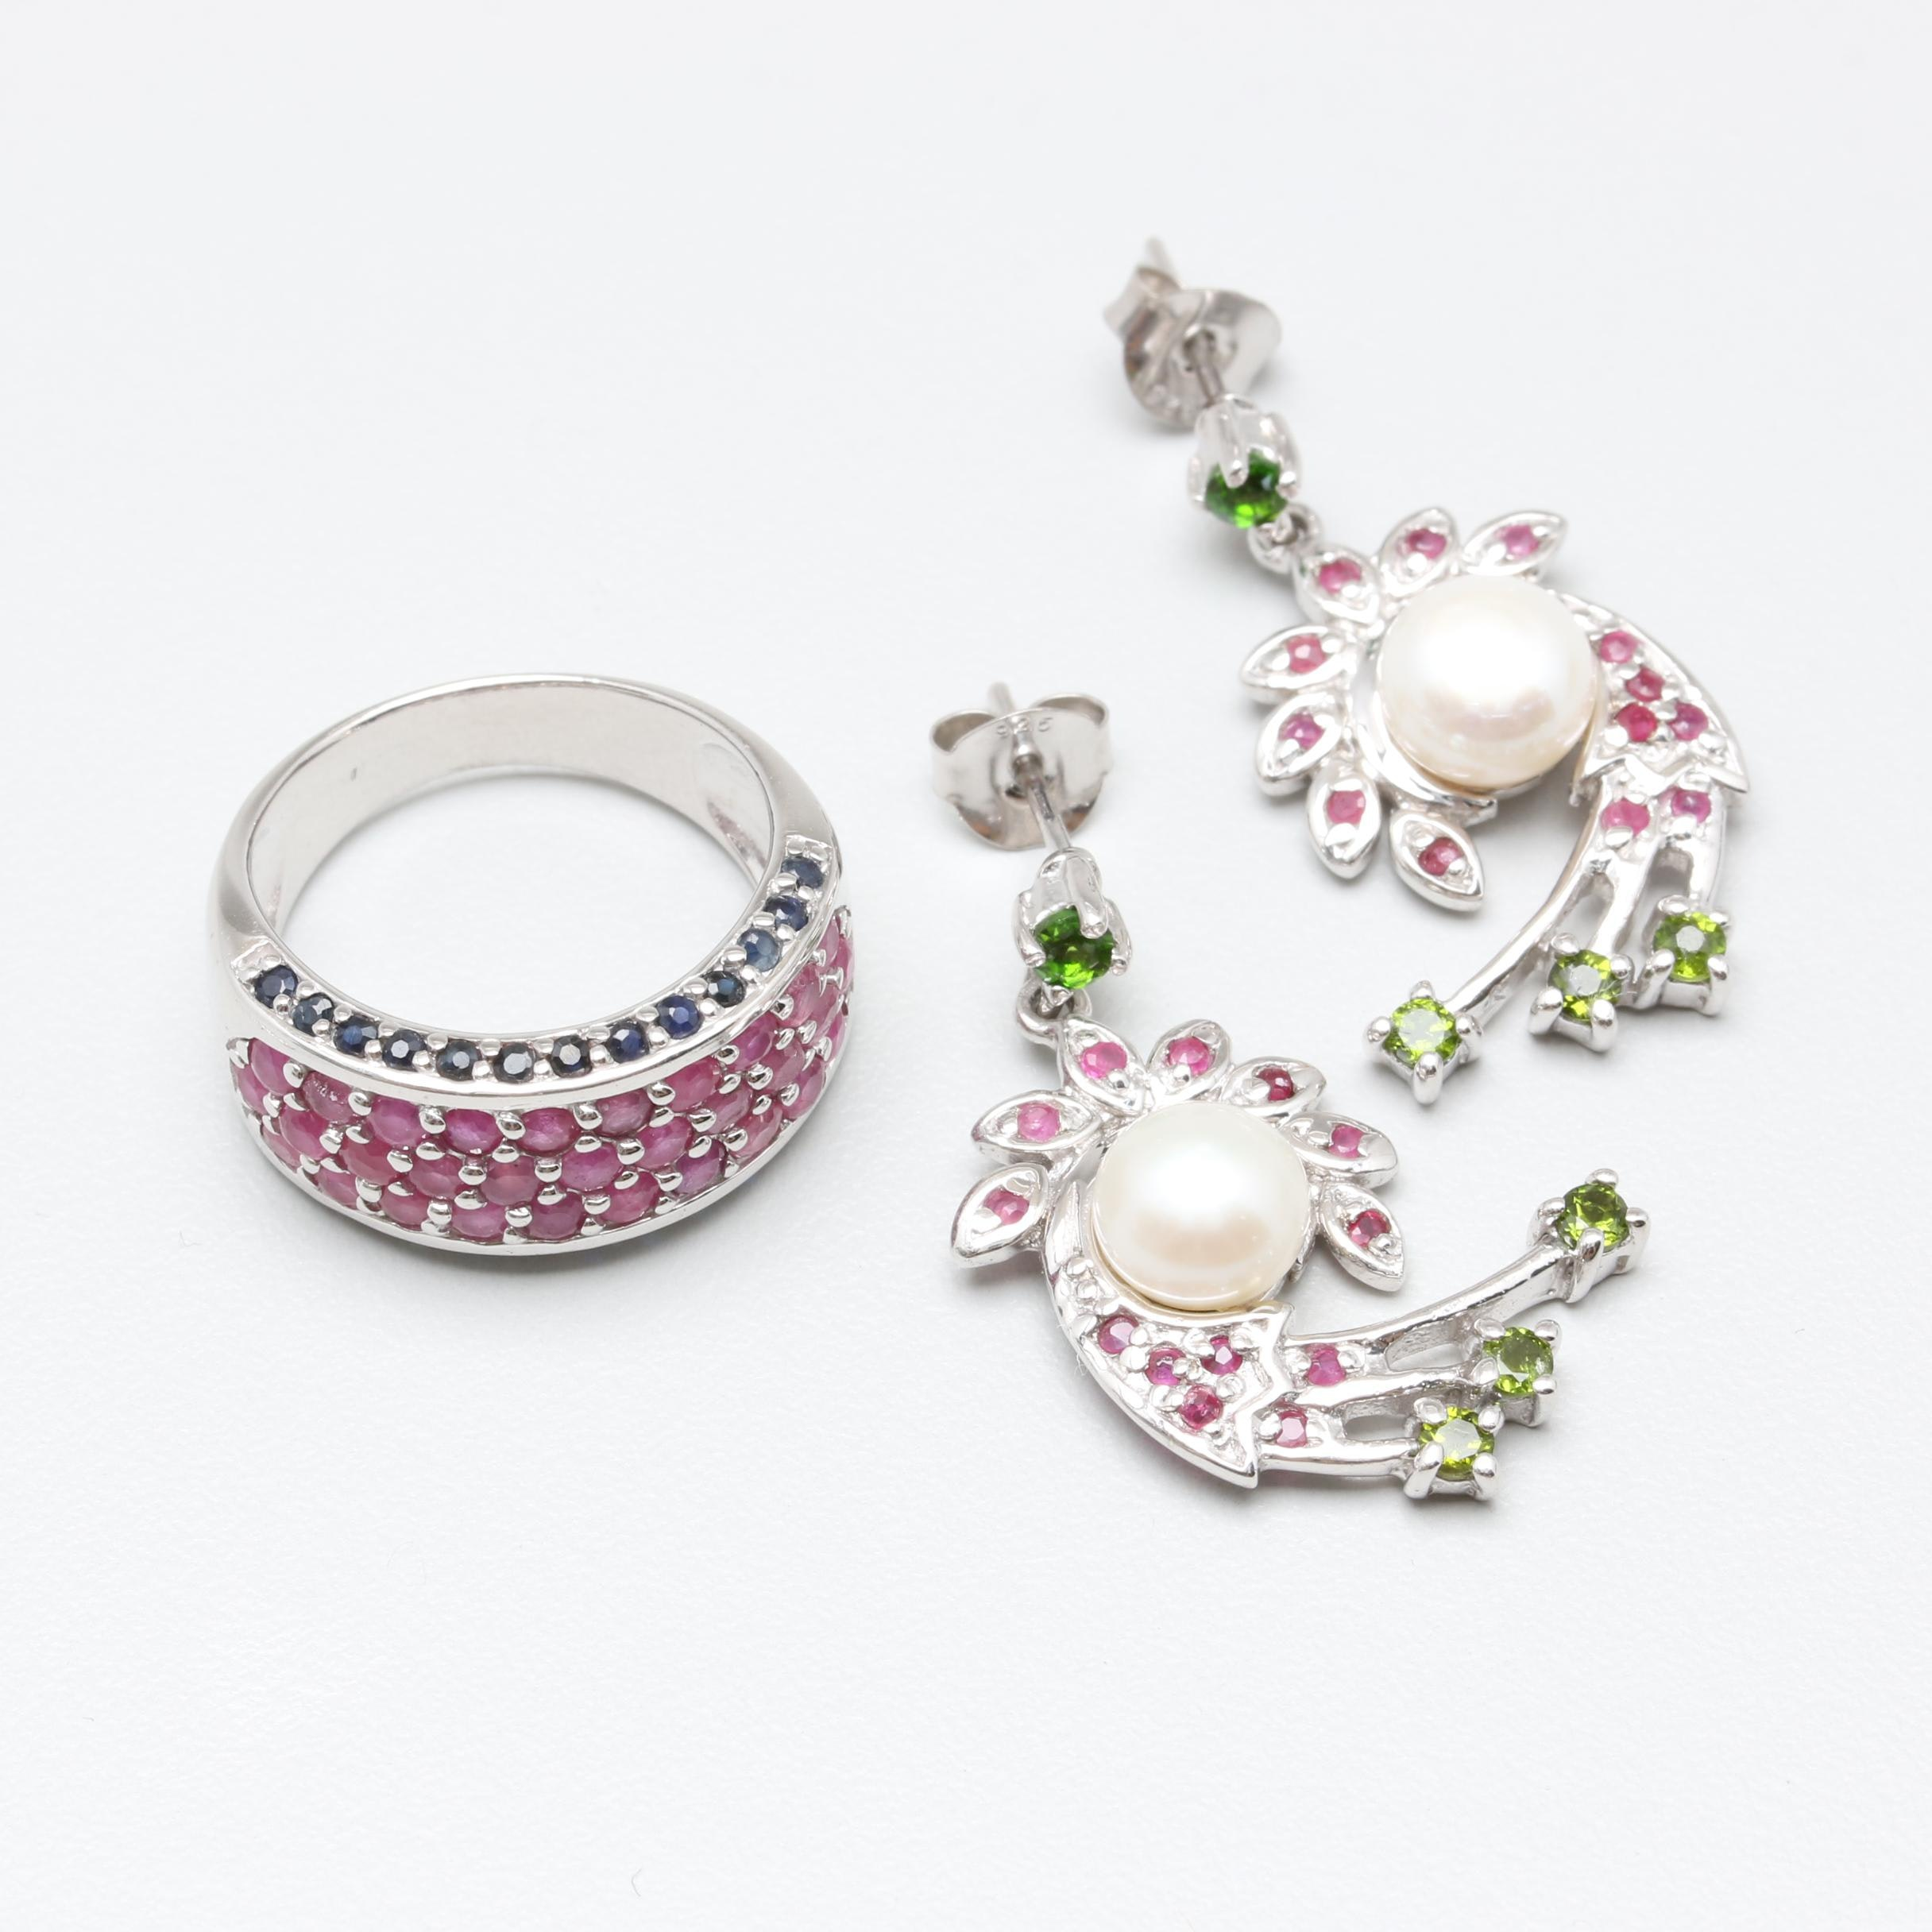 Sterling Silver Ruby and Sapphire Ring with Gemstone Earrings